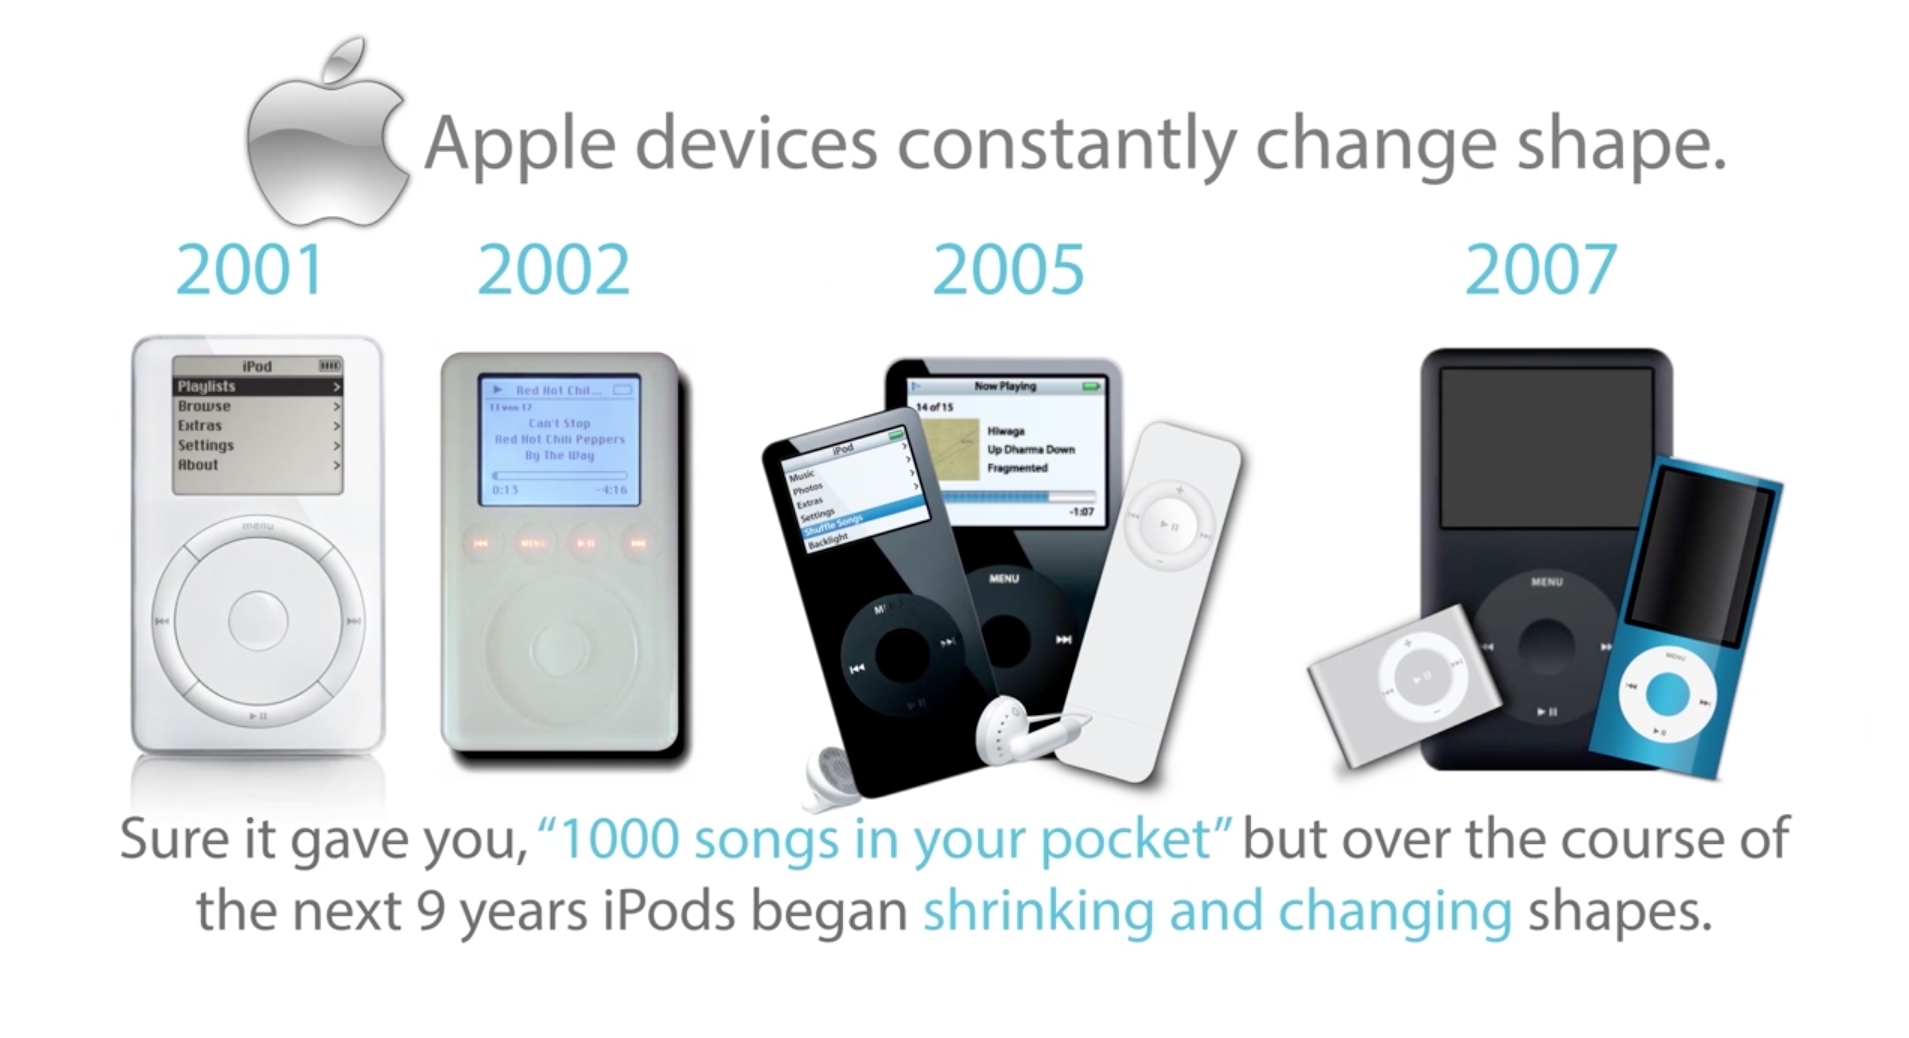 Apple devices constantly change shape